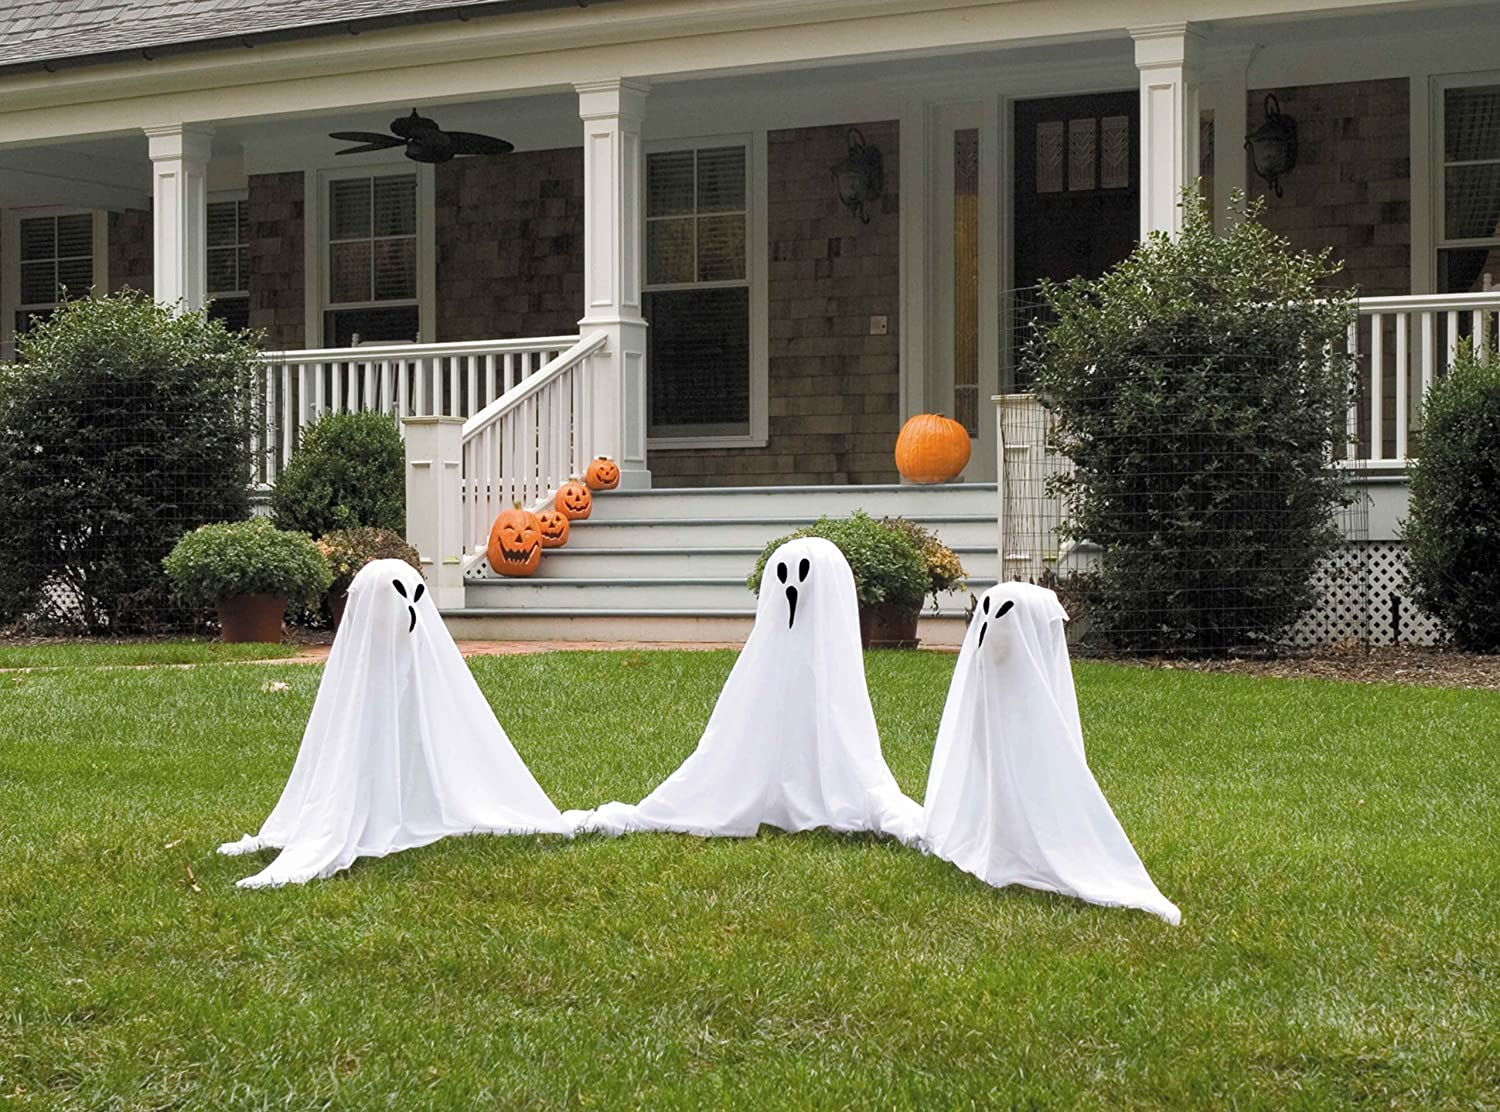 Amazon.com: Small Light-Up Ghostly Group Decoration: Toys & Games